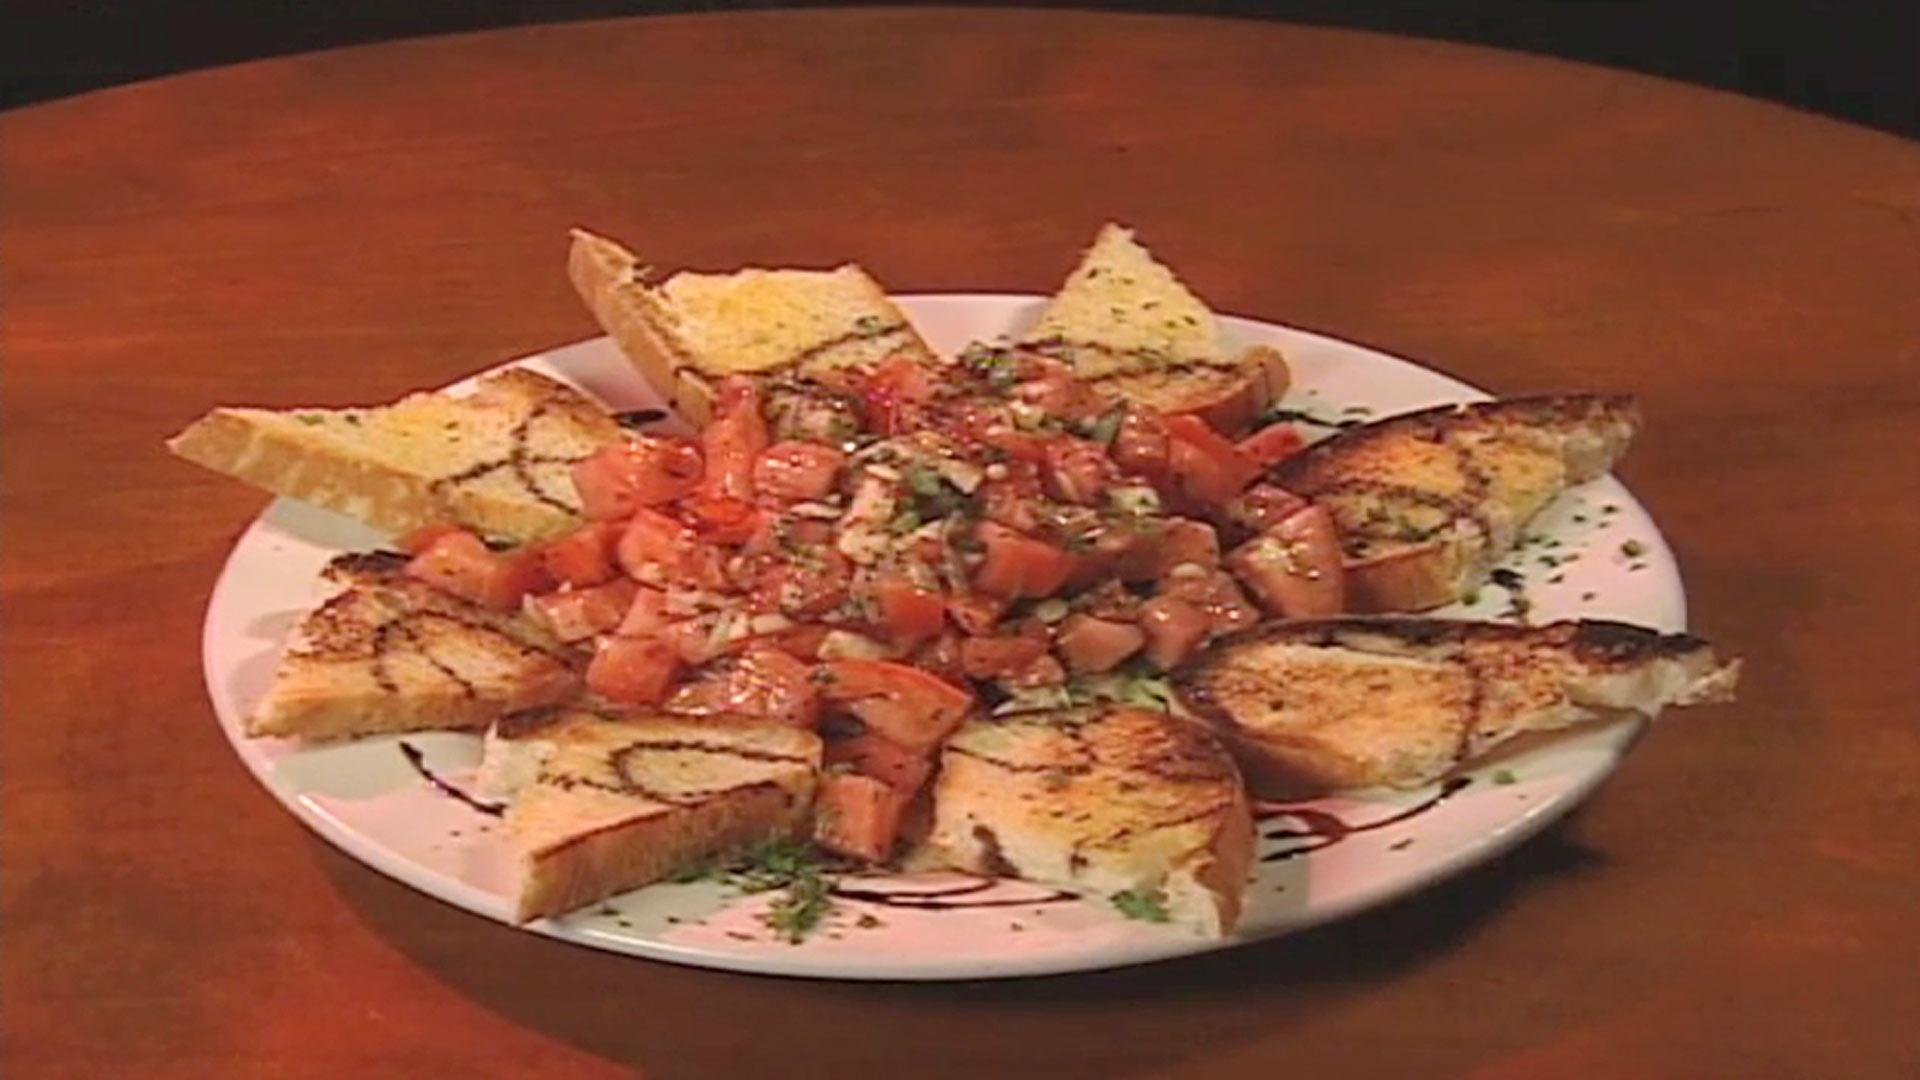 Amante italian cuisine check please south florida pbs for Amante italian cuisine